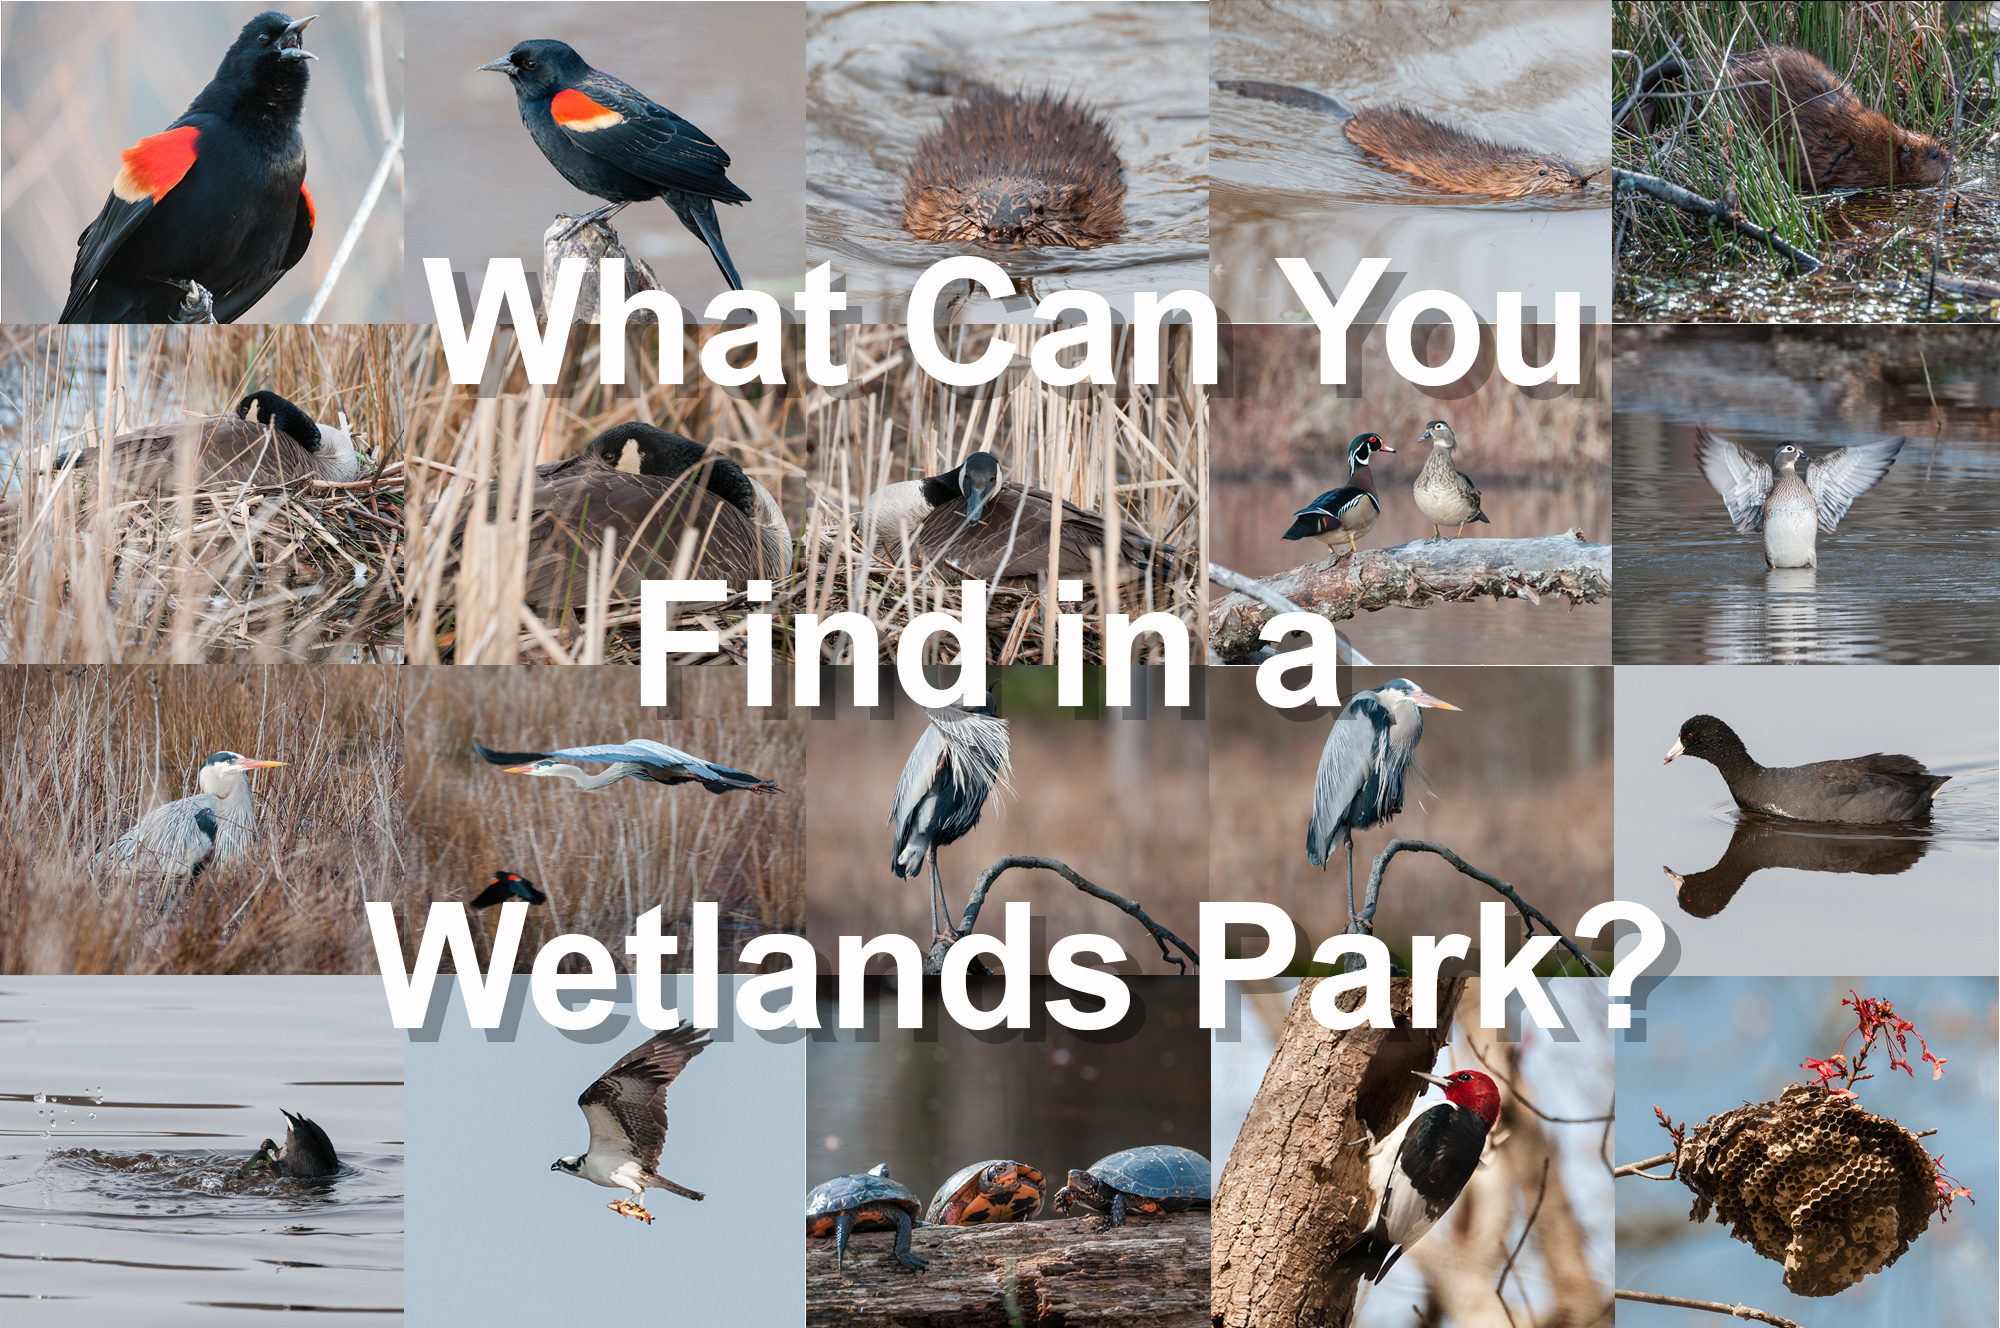 What can you find in a wetlands park?